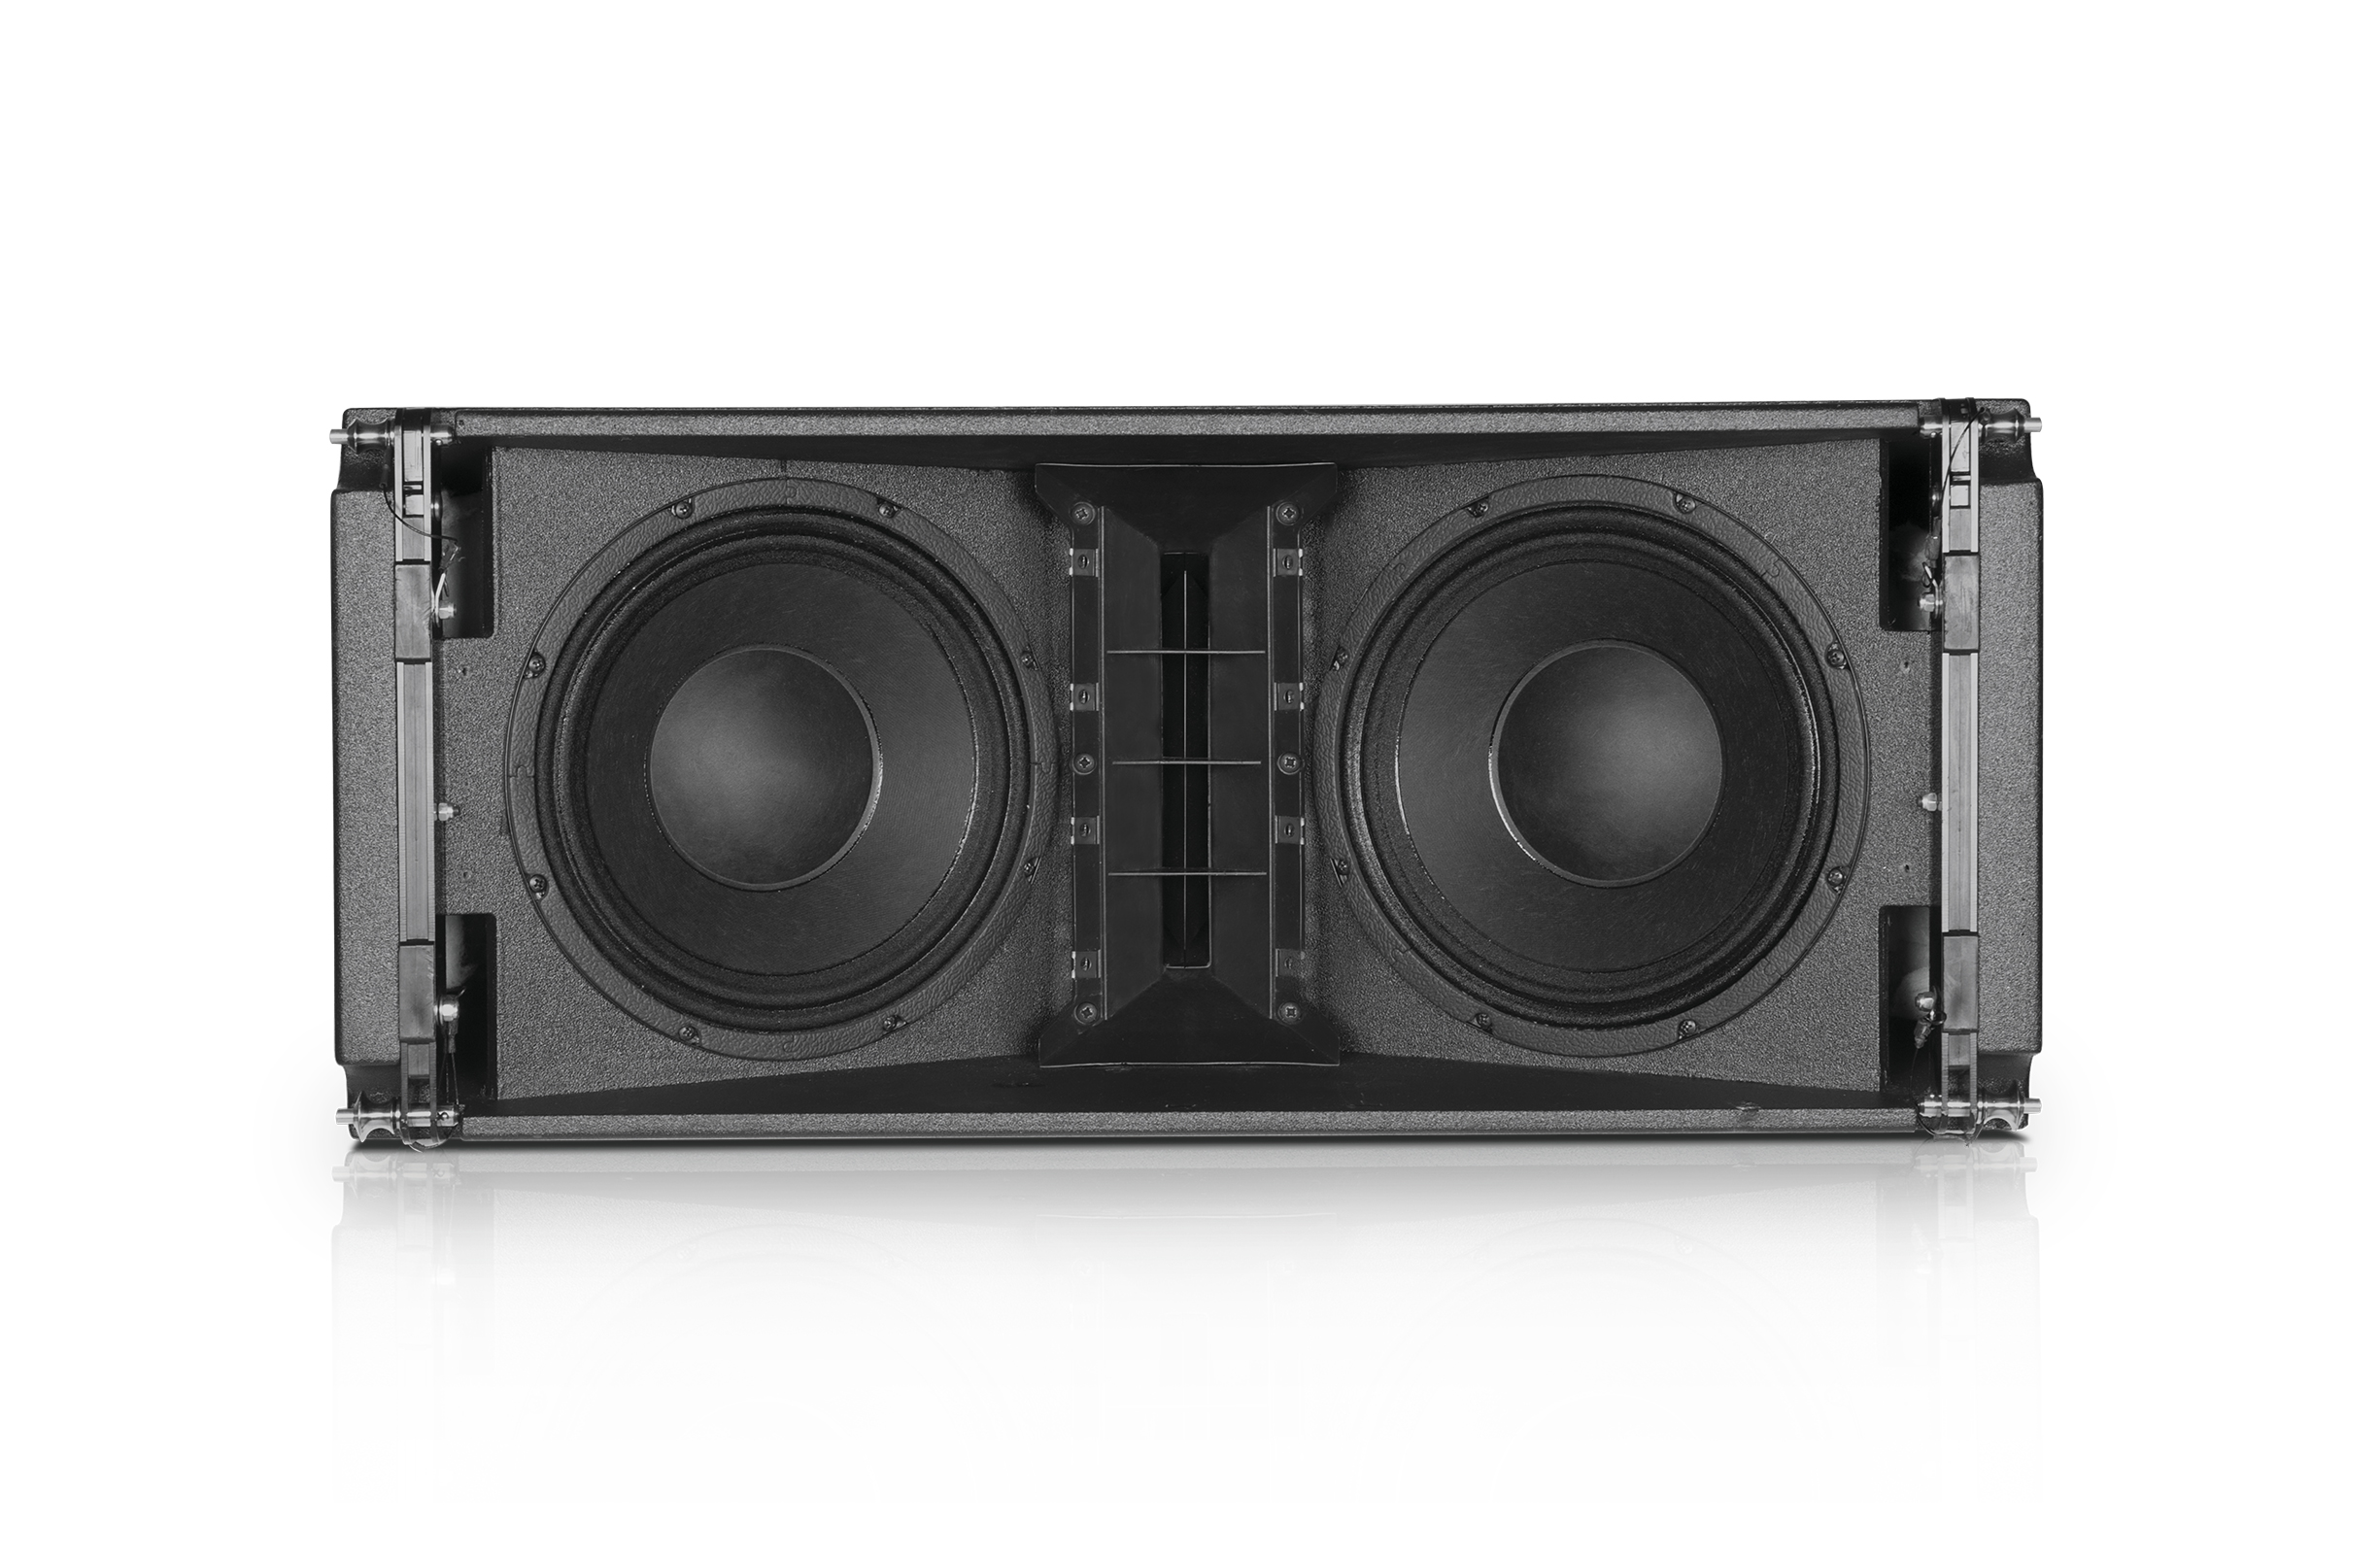 VioL210-front-woofers-dbtechnologies-23052016